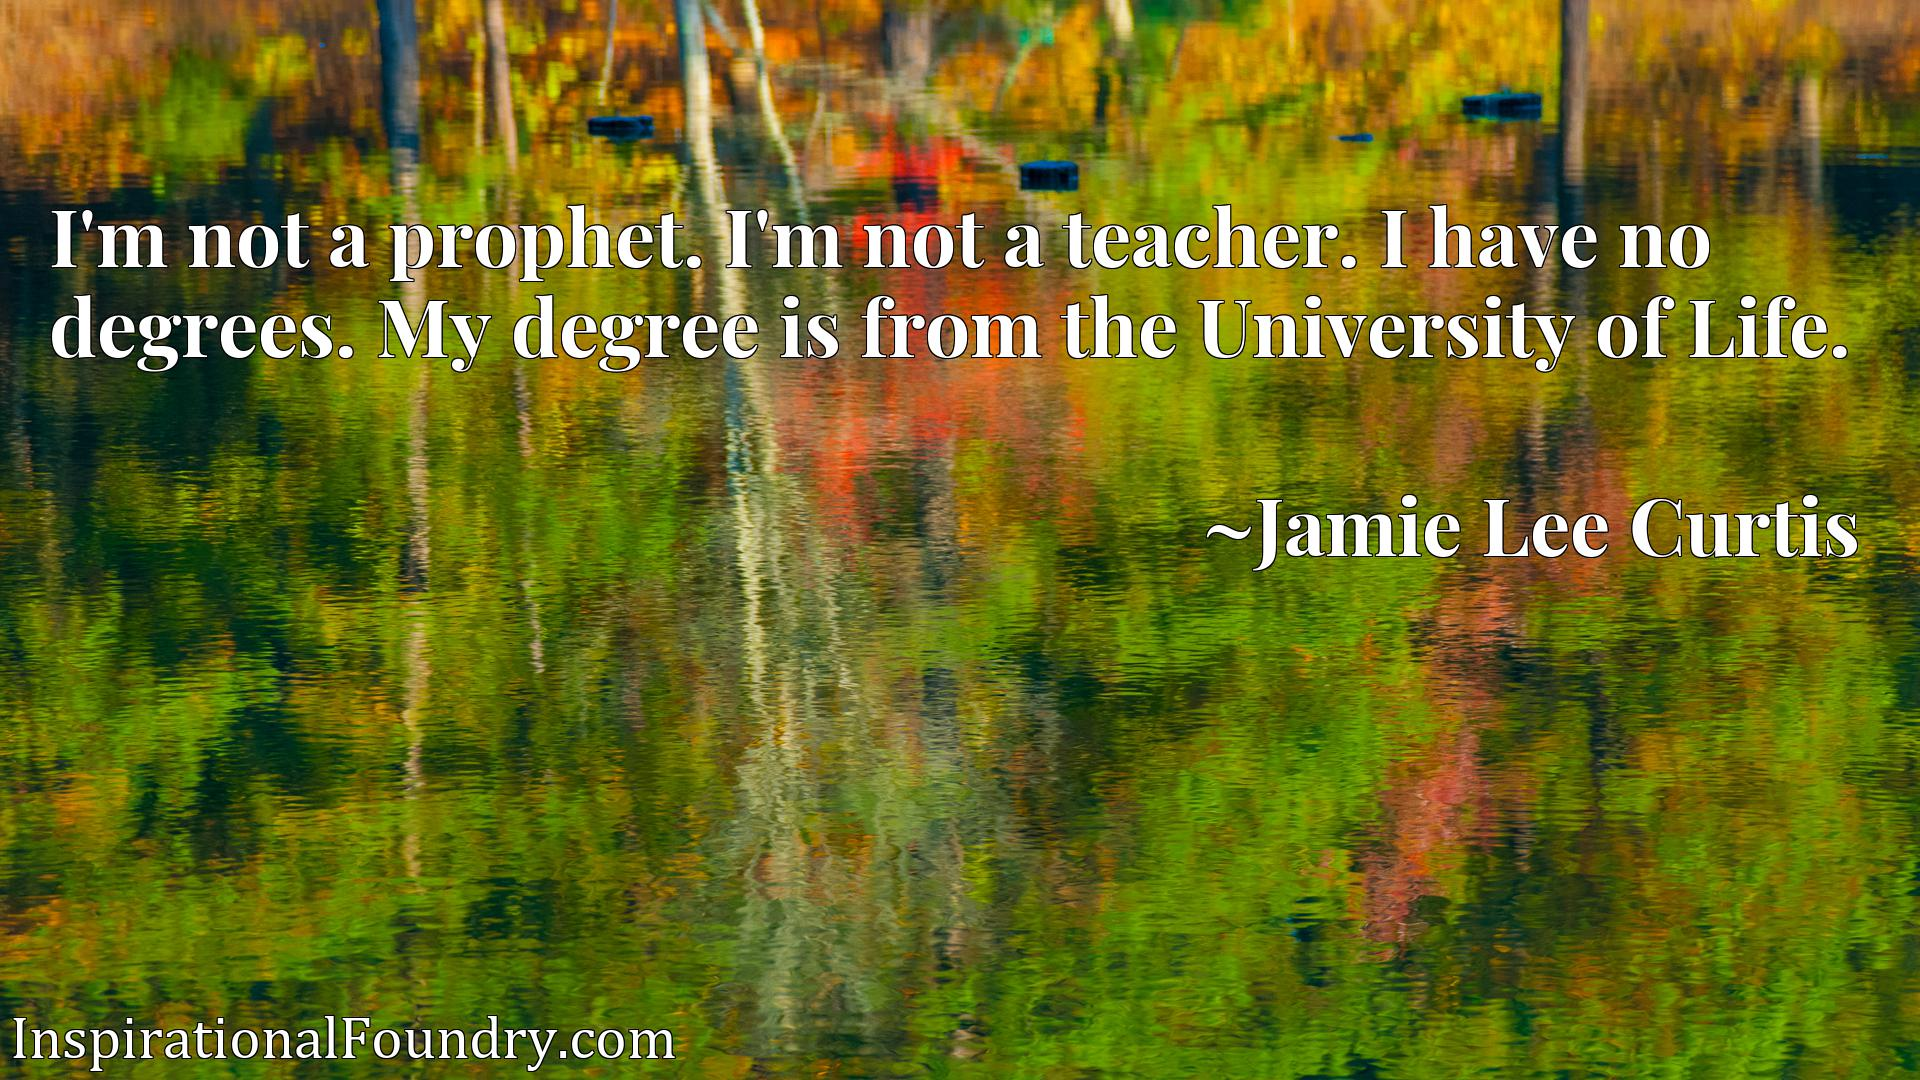 I'm not a prophet. I'm not a teacher. I have no degrees. My degree is from the University of Life.